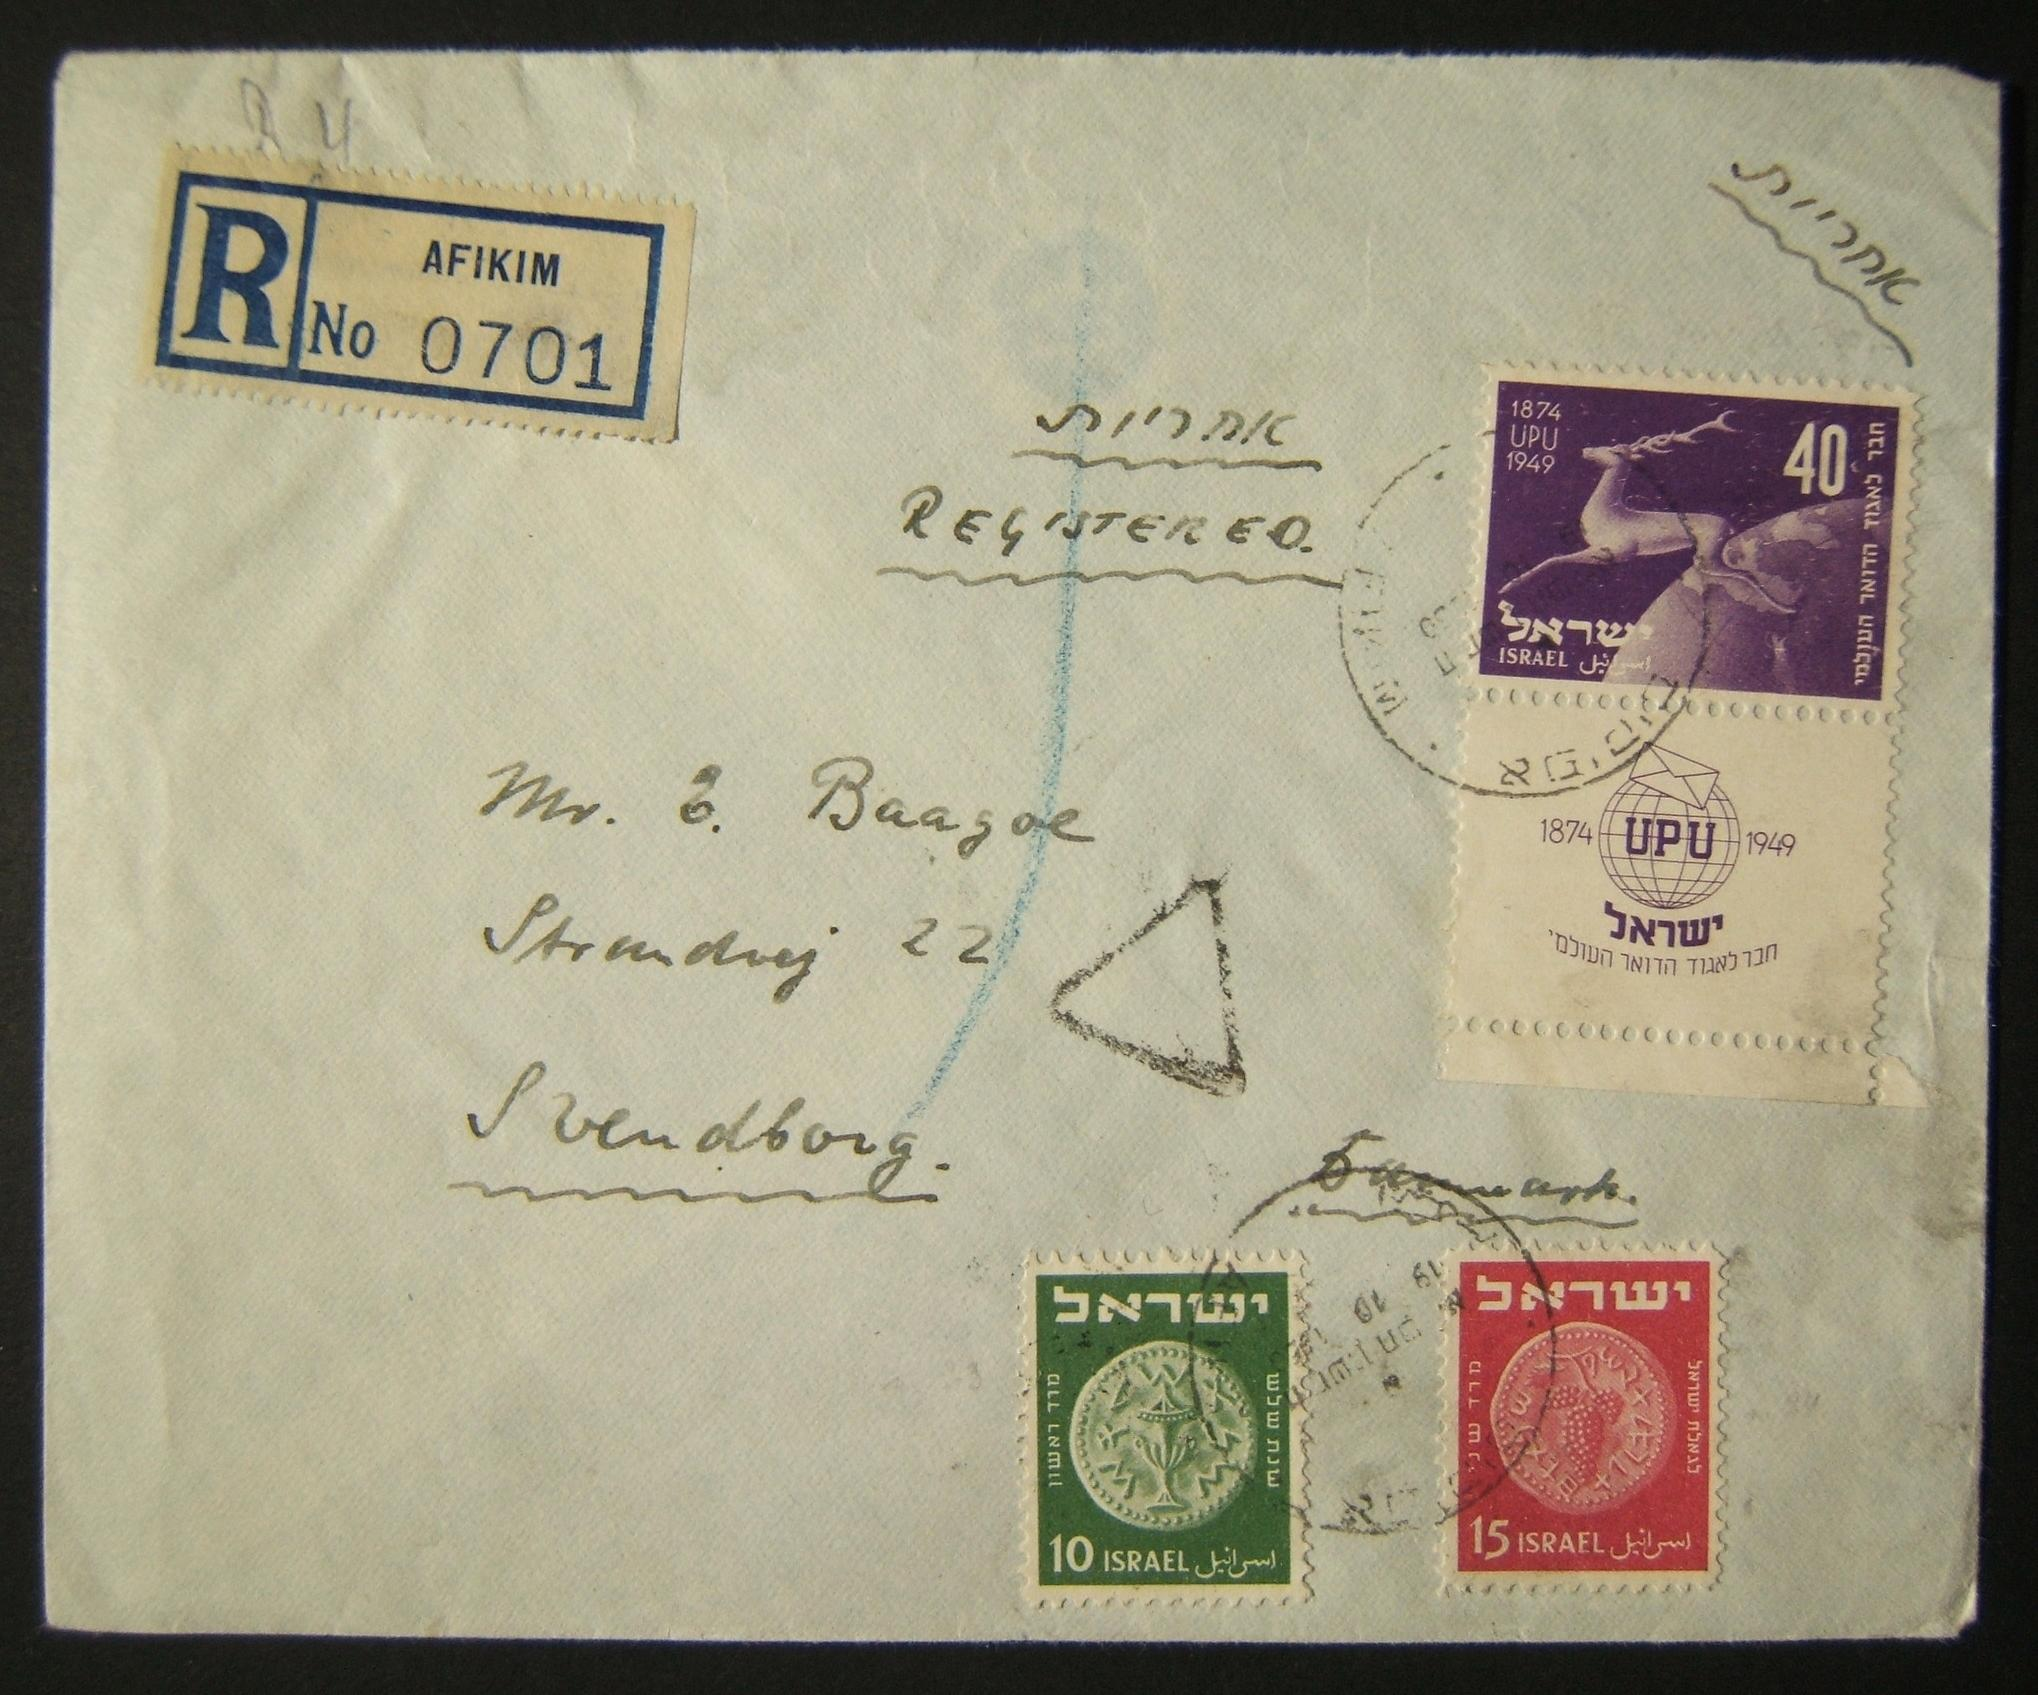 10/1950 taxed surface mail from AFIKIM to Denmark using full tabbed Independence stamp